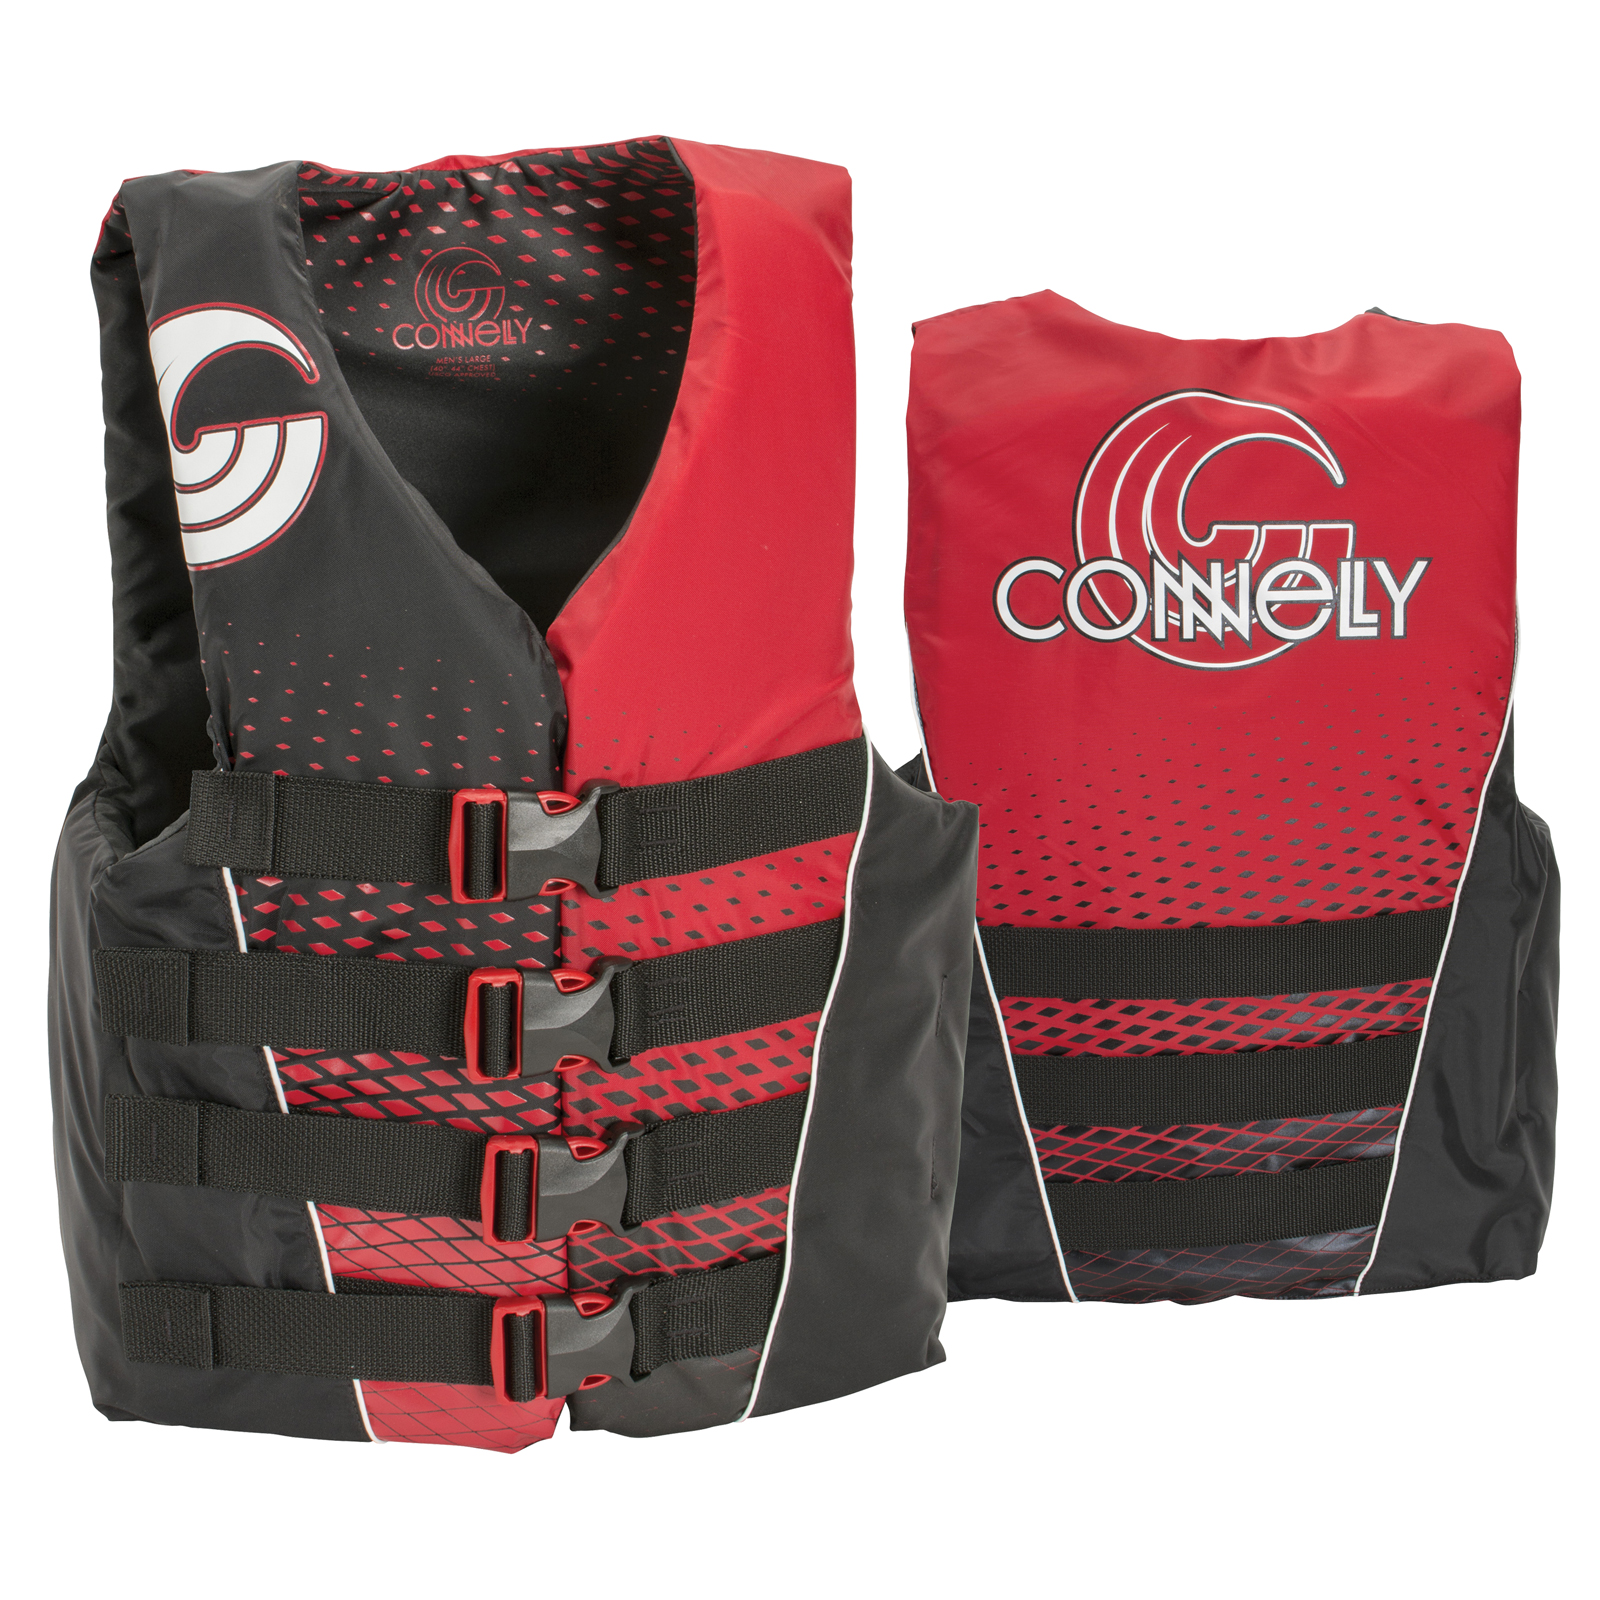 4 BUCKLE NYLON VEST CONNELLY 2017